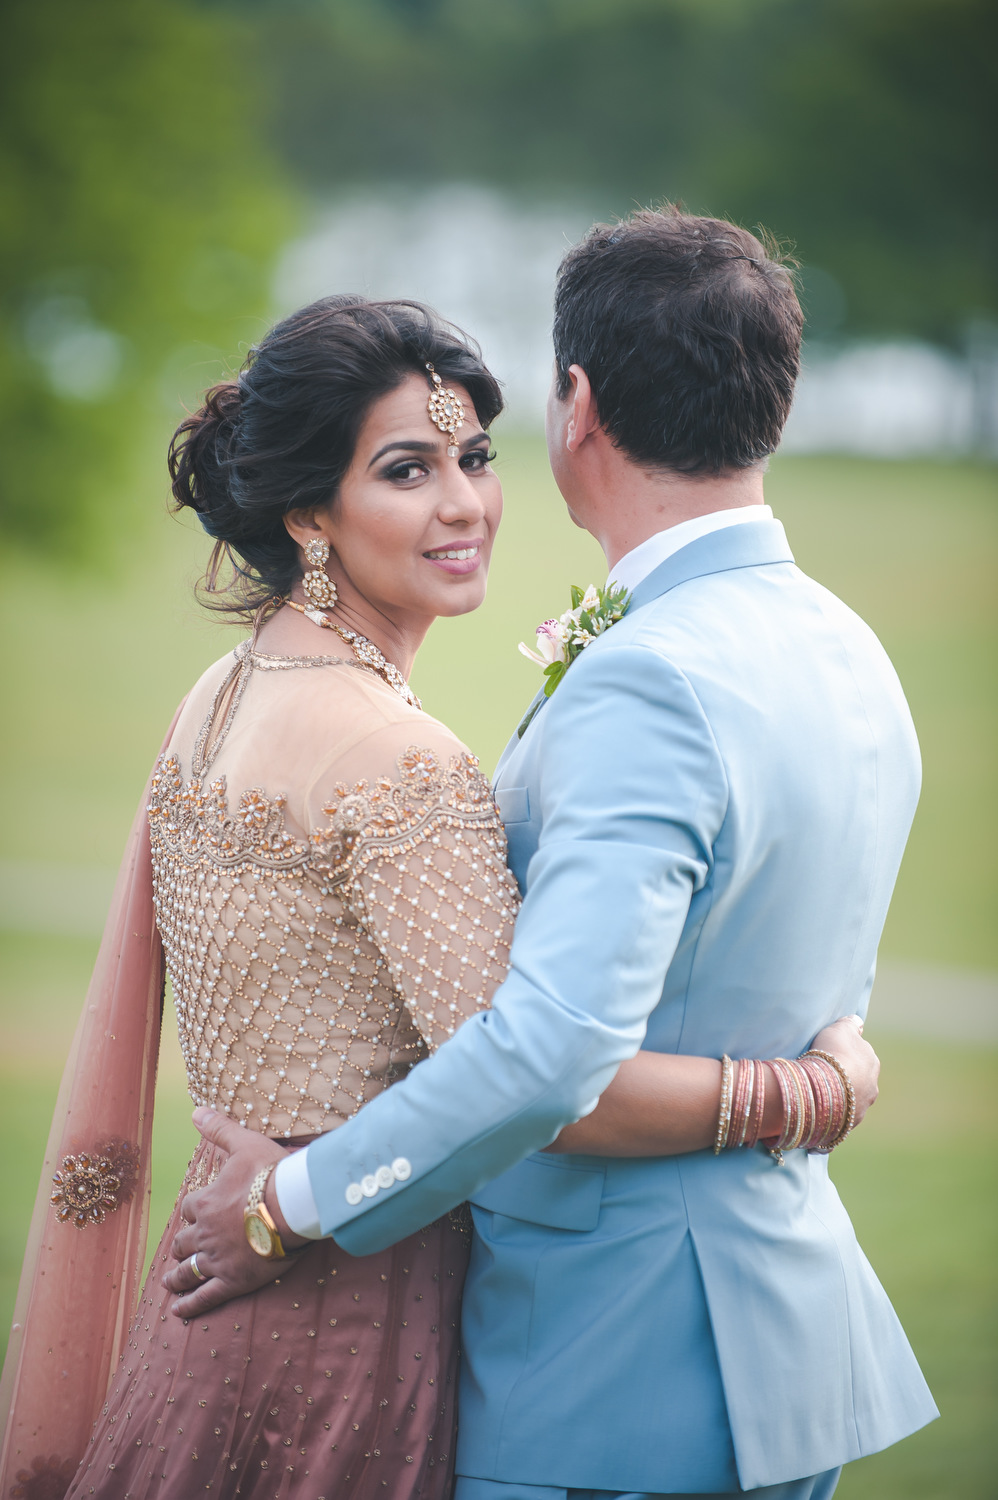 charnwood_weddings_wollaton_hall_fazilah_naeem298.JPG